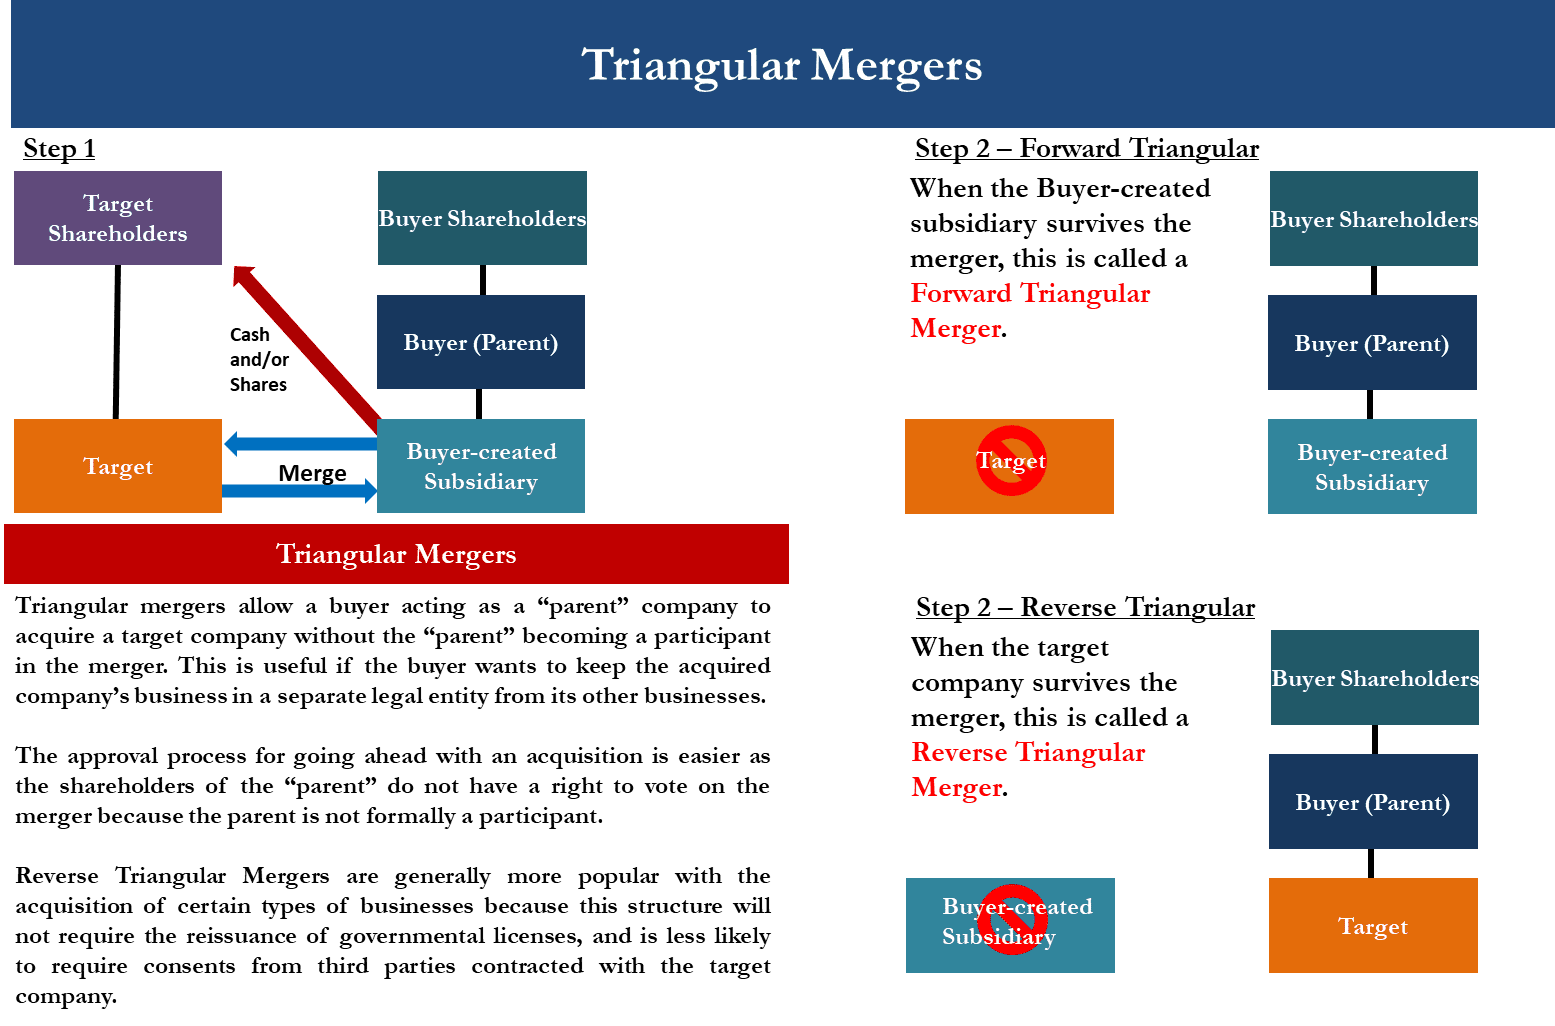 M&A Merger Diagram showing Indirect Triangular Merger